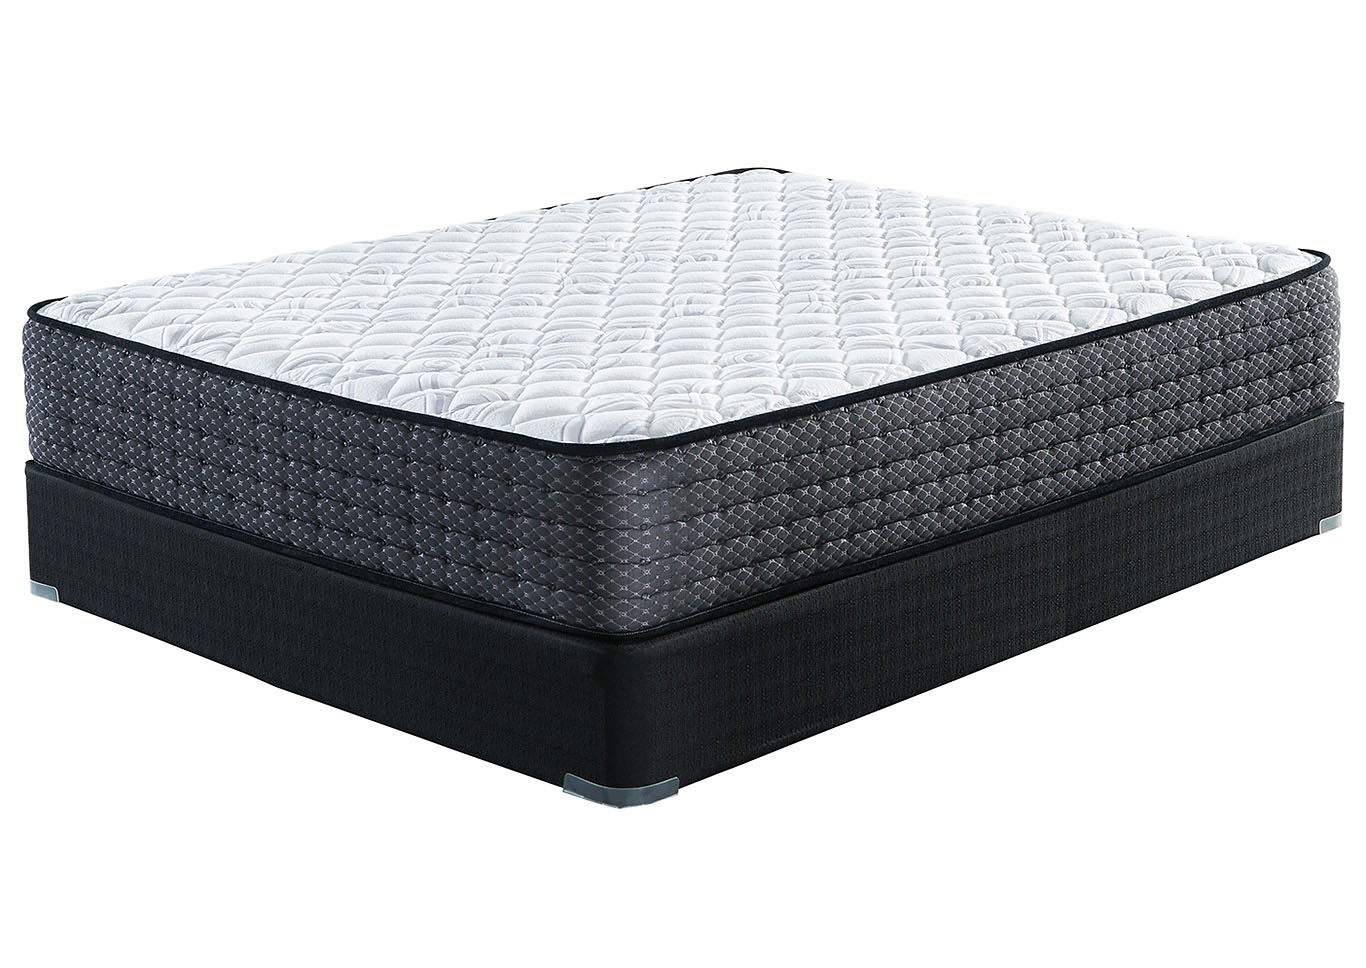 Limited Edition White Firm Queen Mattress,Sierra Sleep by Ashley